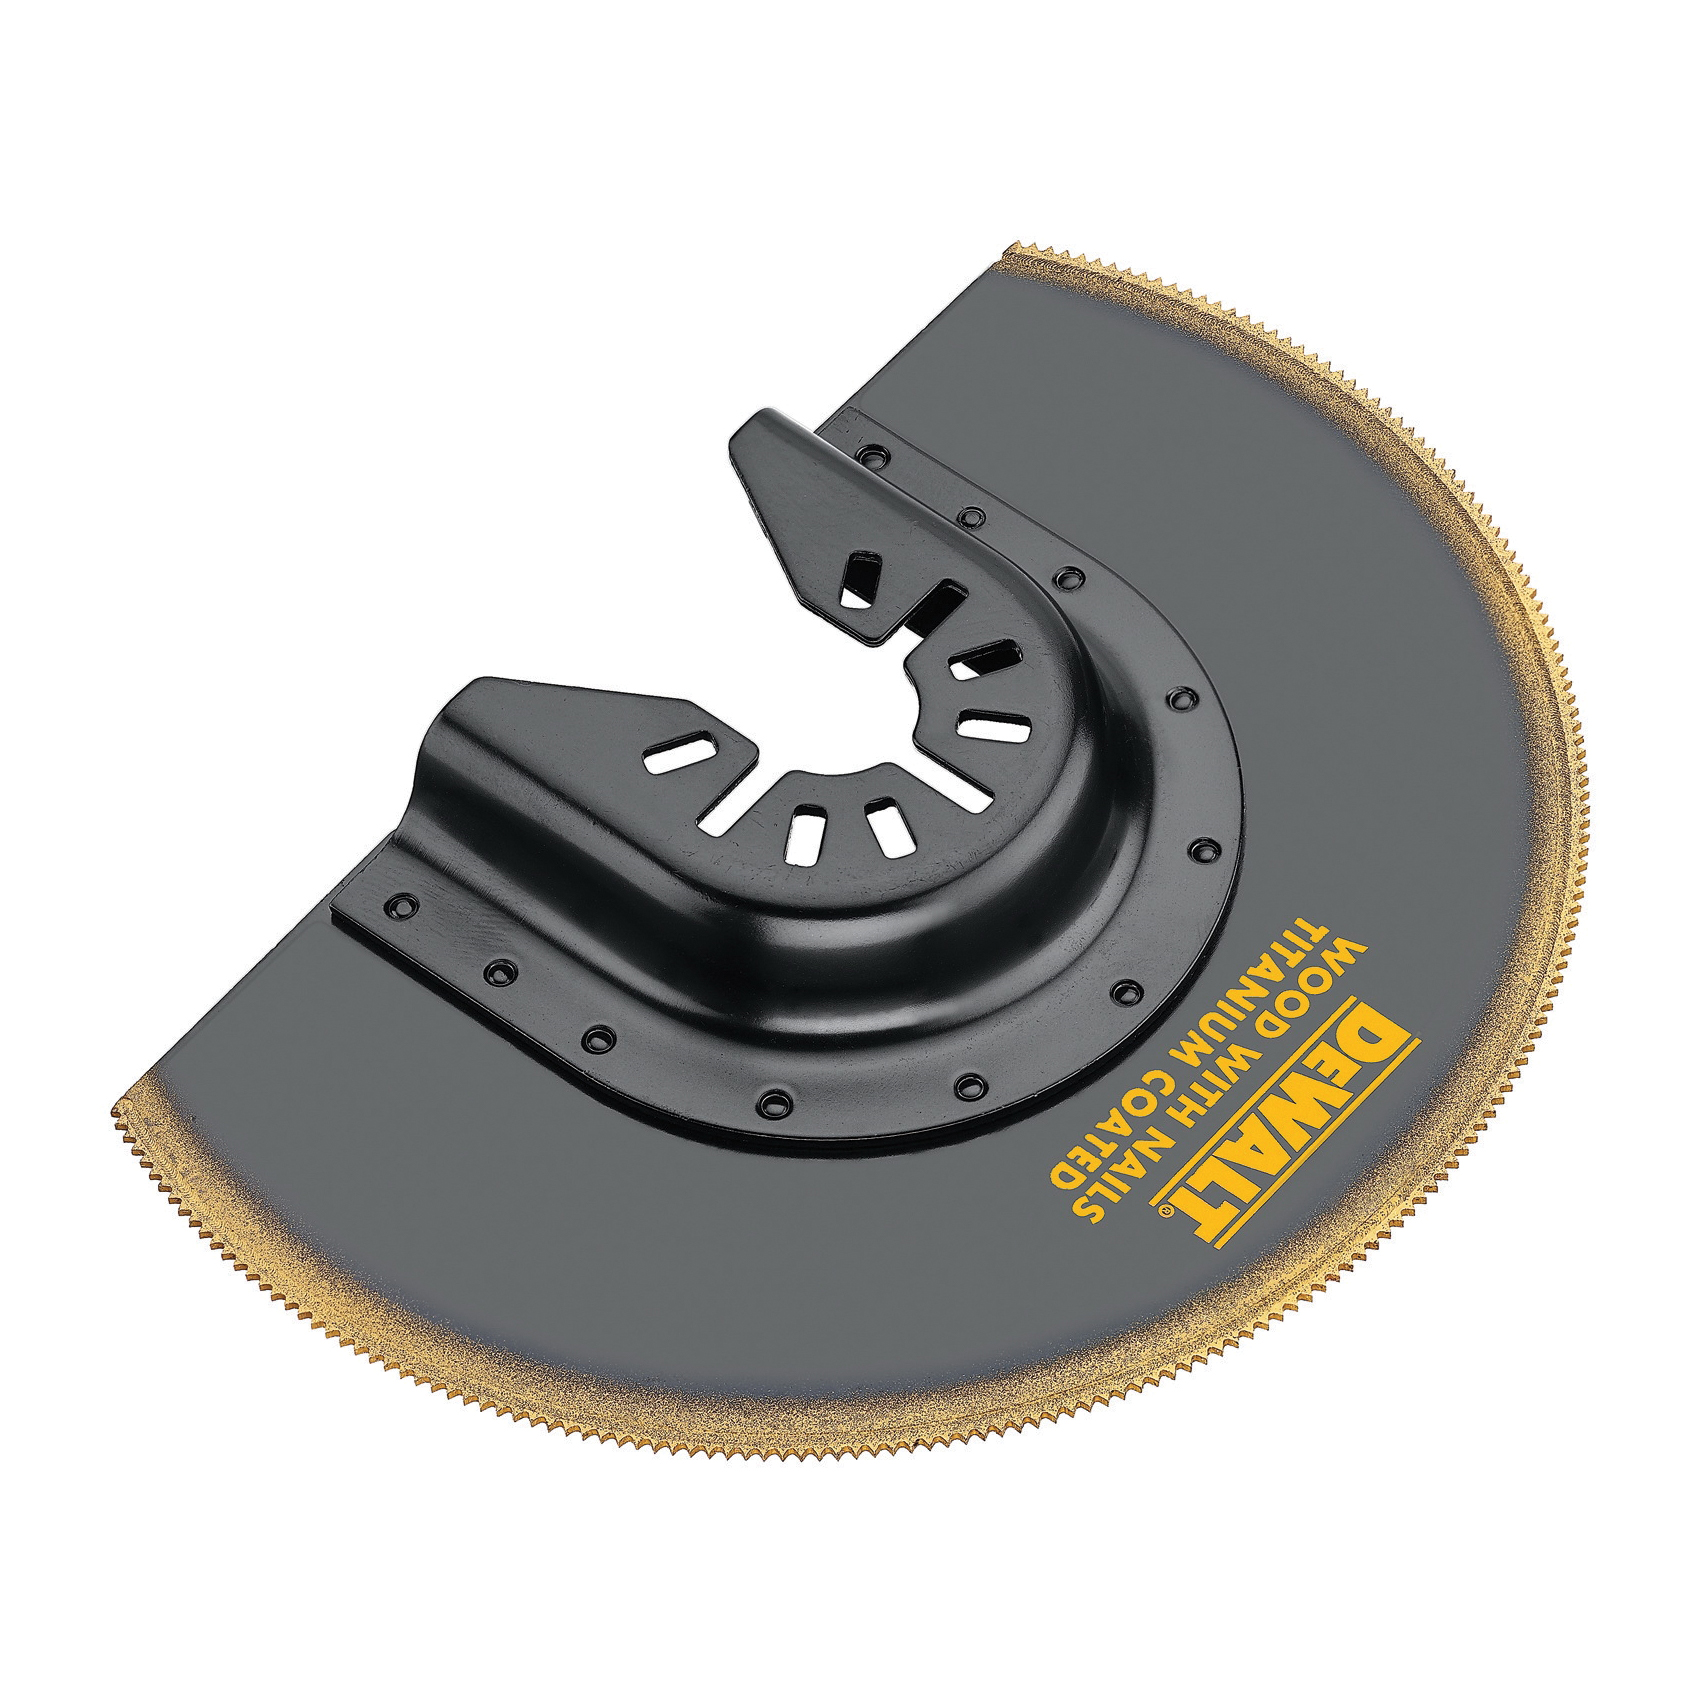 DeWALT® DWA4213 Oscillating Blade, For Use With All Oscillating Tool, 4 in, Titanium